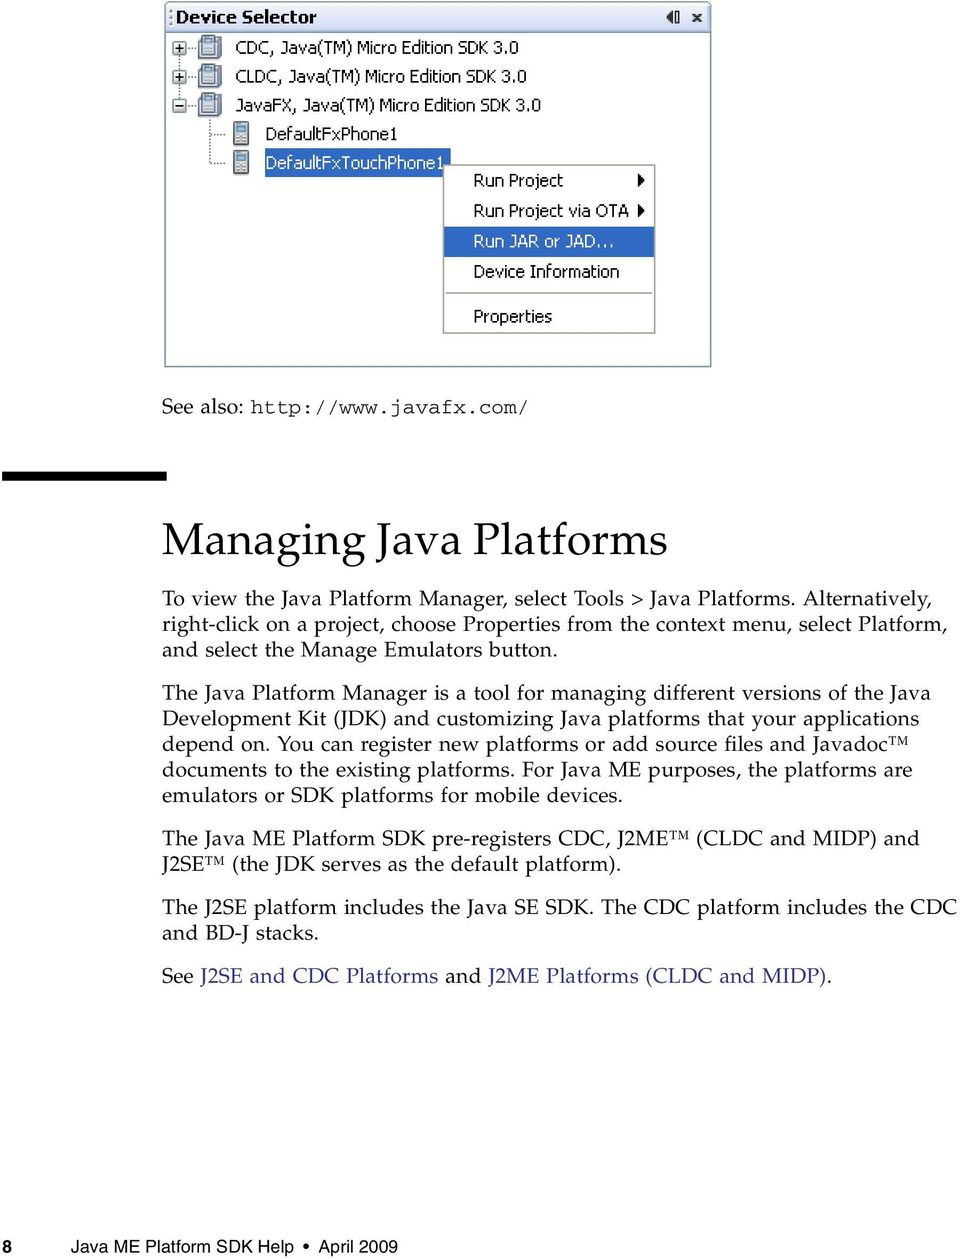 The Java Platform Manager is a tool for managing different versions of the Java Development Kit (JDK) and customizing Java platforms that your applications depend on.